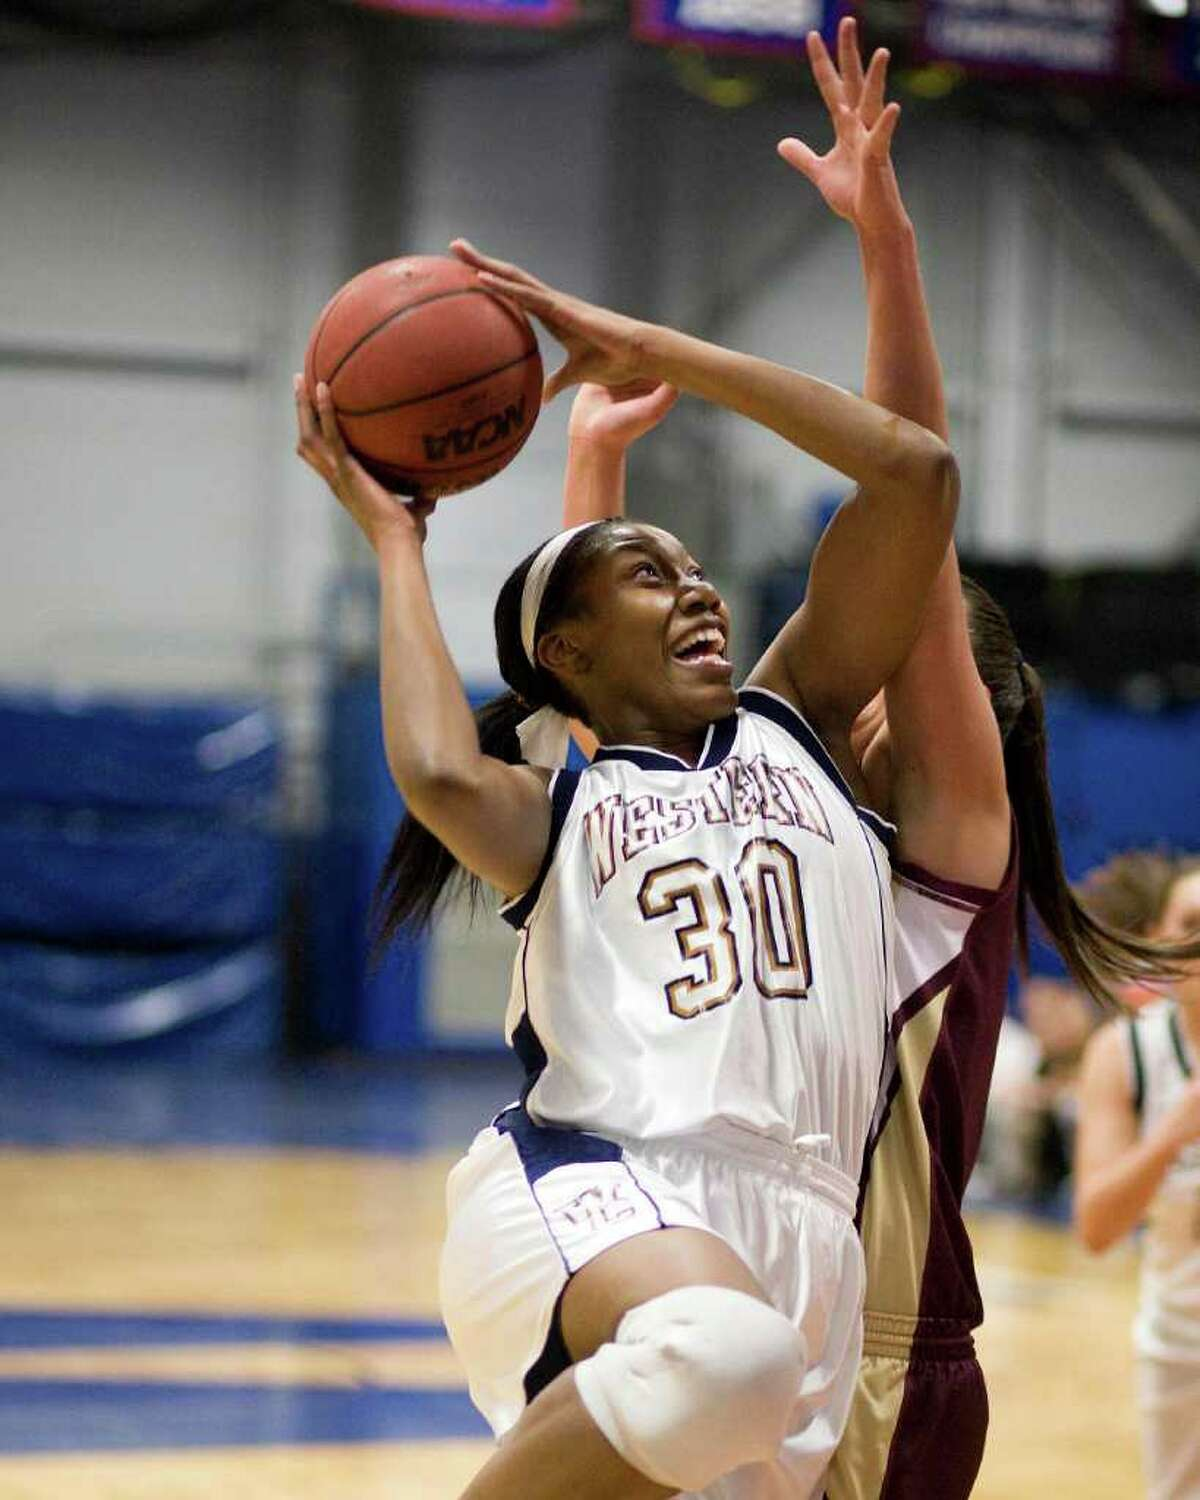 WCSU's Melissa Teel takes the ball to the basket during an LEC game against Rhode Island College Tuesday night at the Feldman Arena.